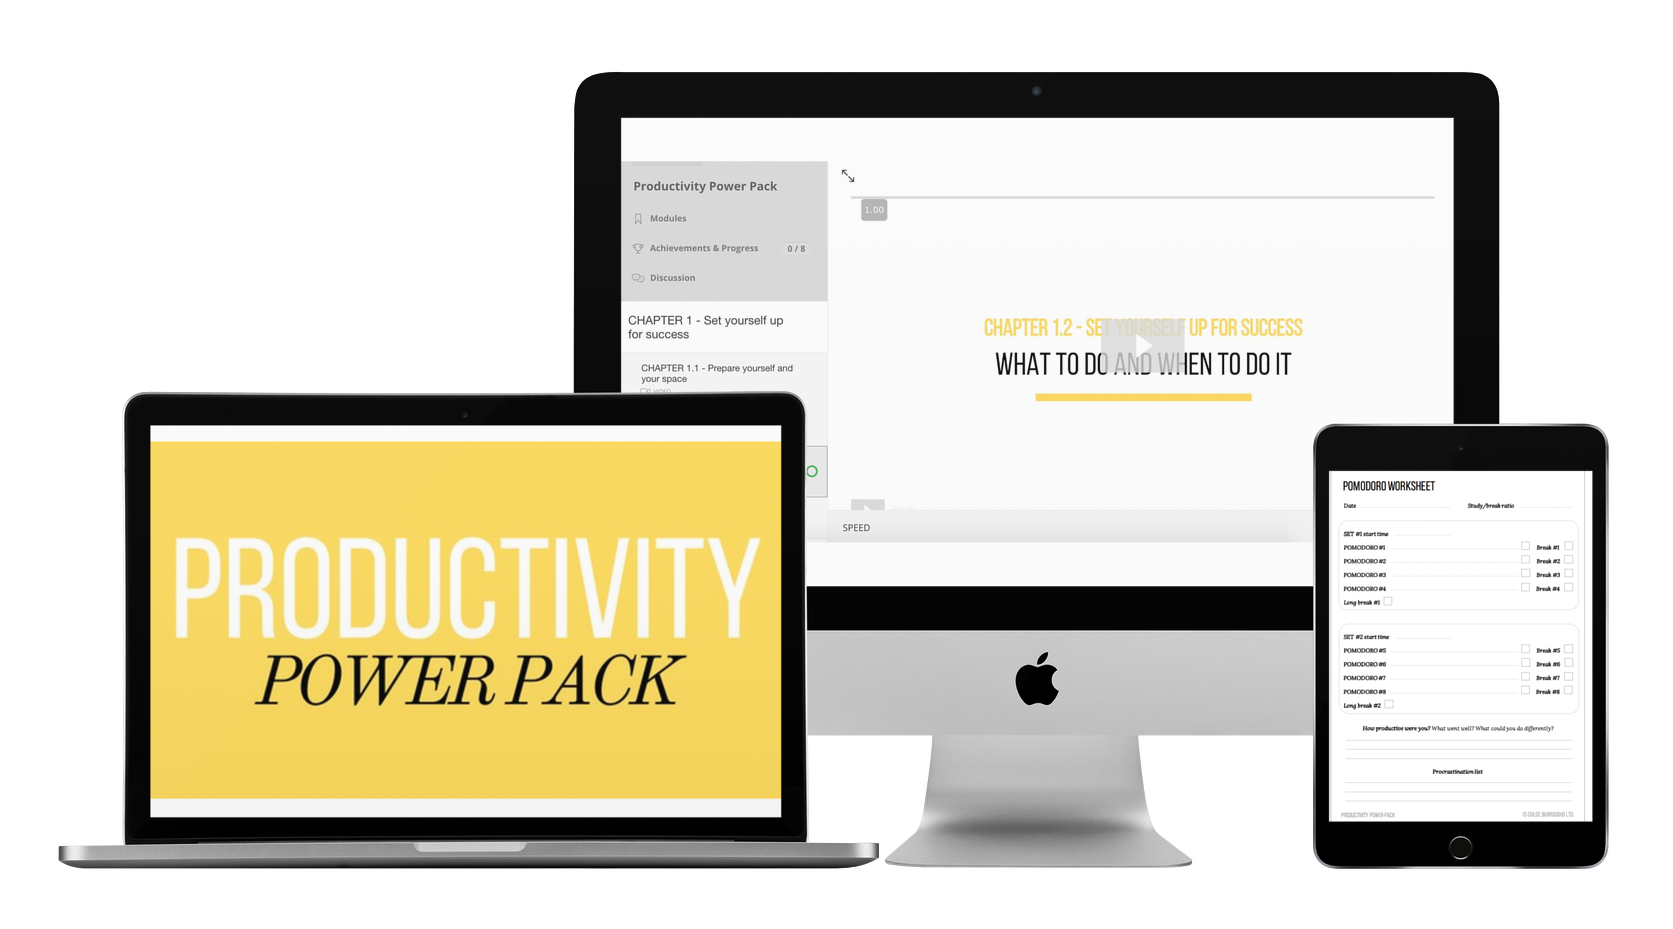 PPP_productivity Power Pack image mock up